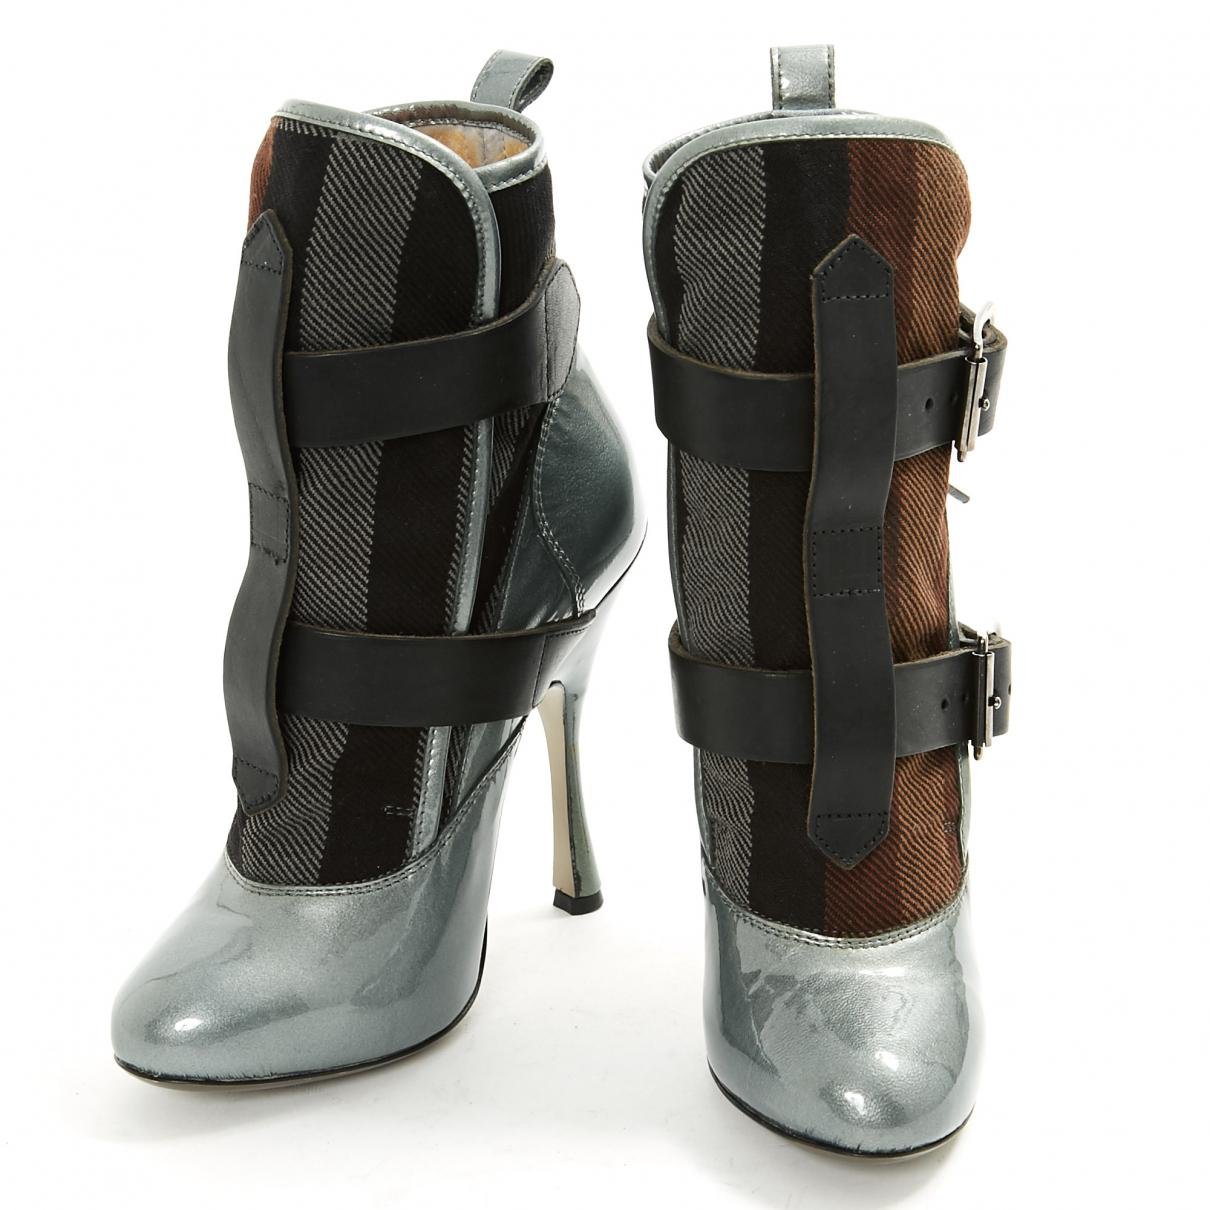 Outlet Exclusive Pre-owned - Patent leather buckled boots Vivienne Westwood Good Selling aY54g